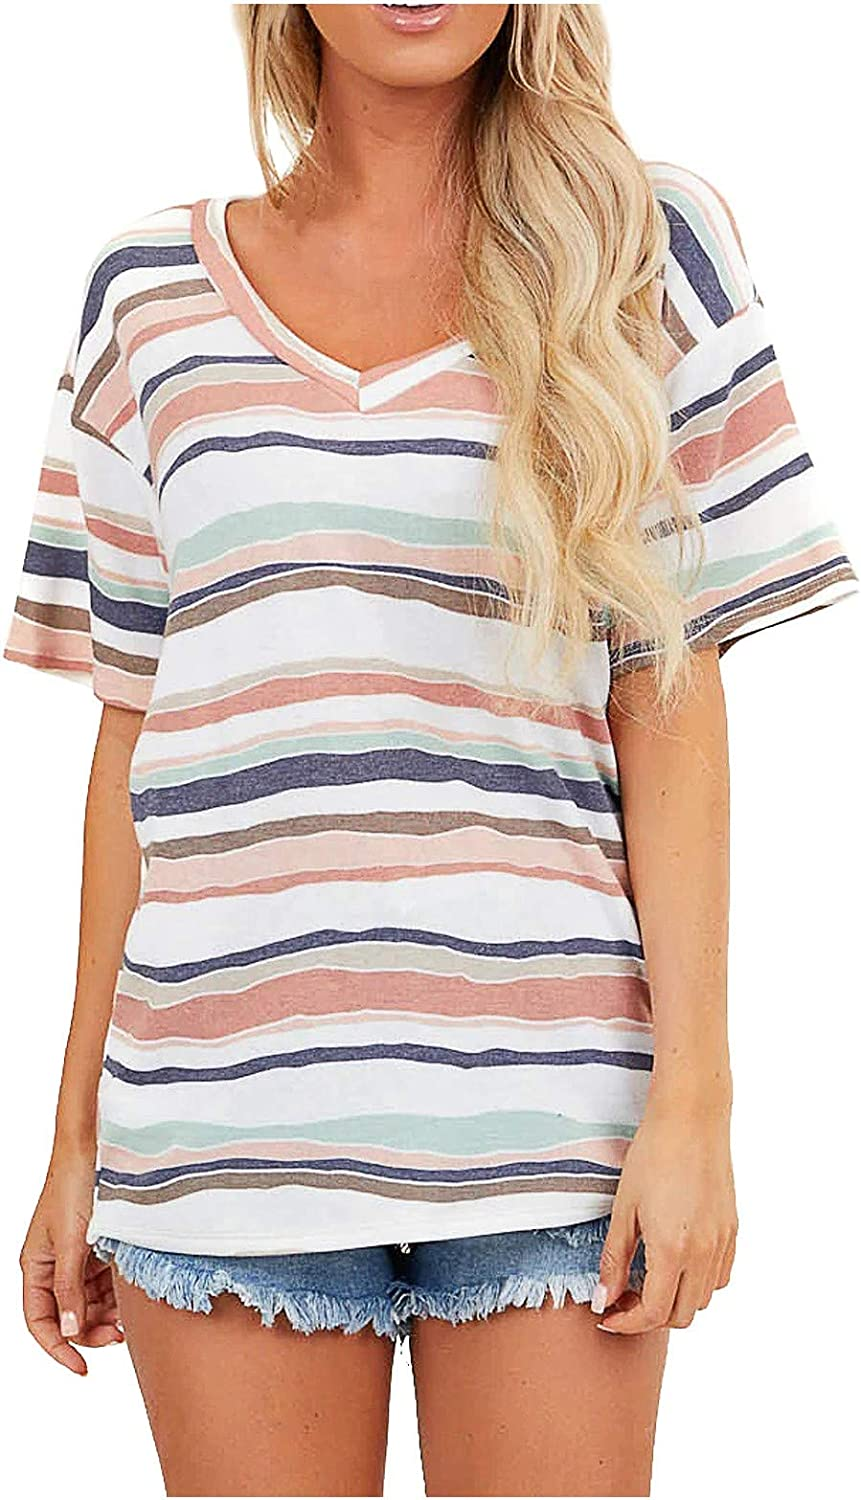 Stripe Splicing Short Sleeve Tops for Women Casual V Neck Cute Blouse Trendy Colorful Loose Daily Tee Shirt